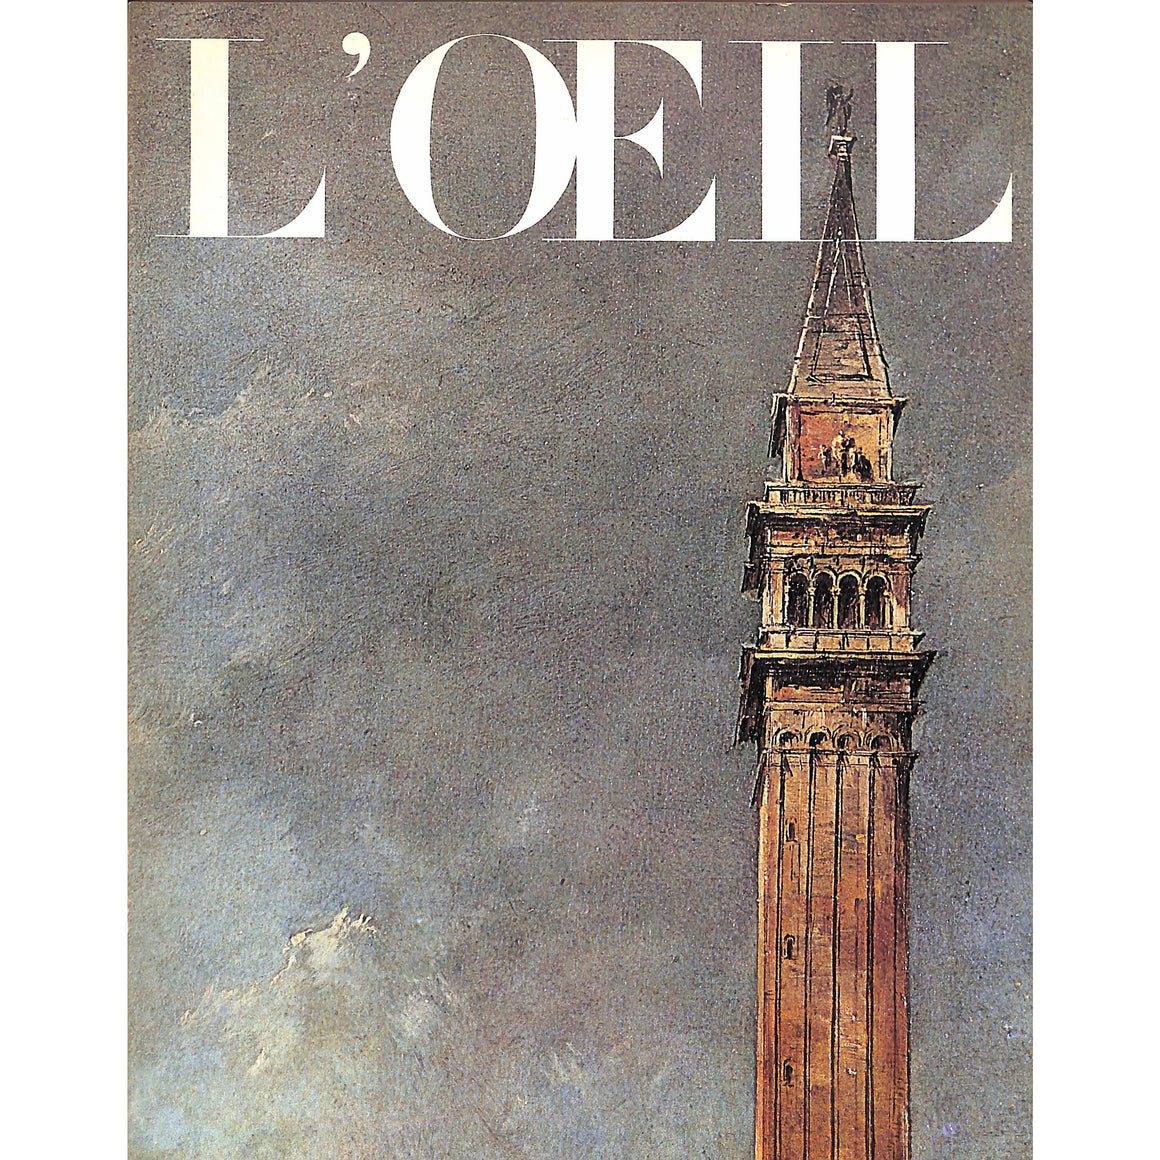 L'Oeil No 124, Avril 1965